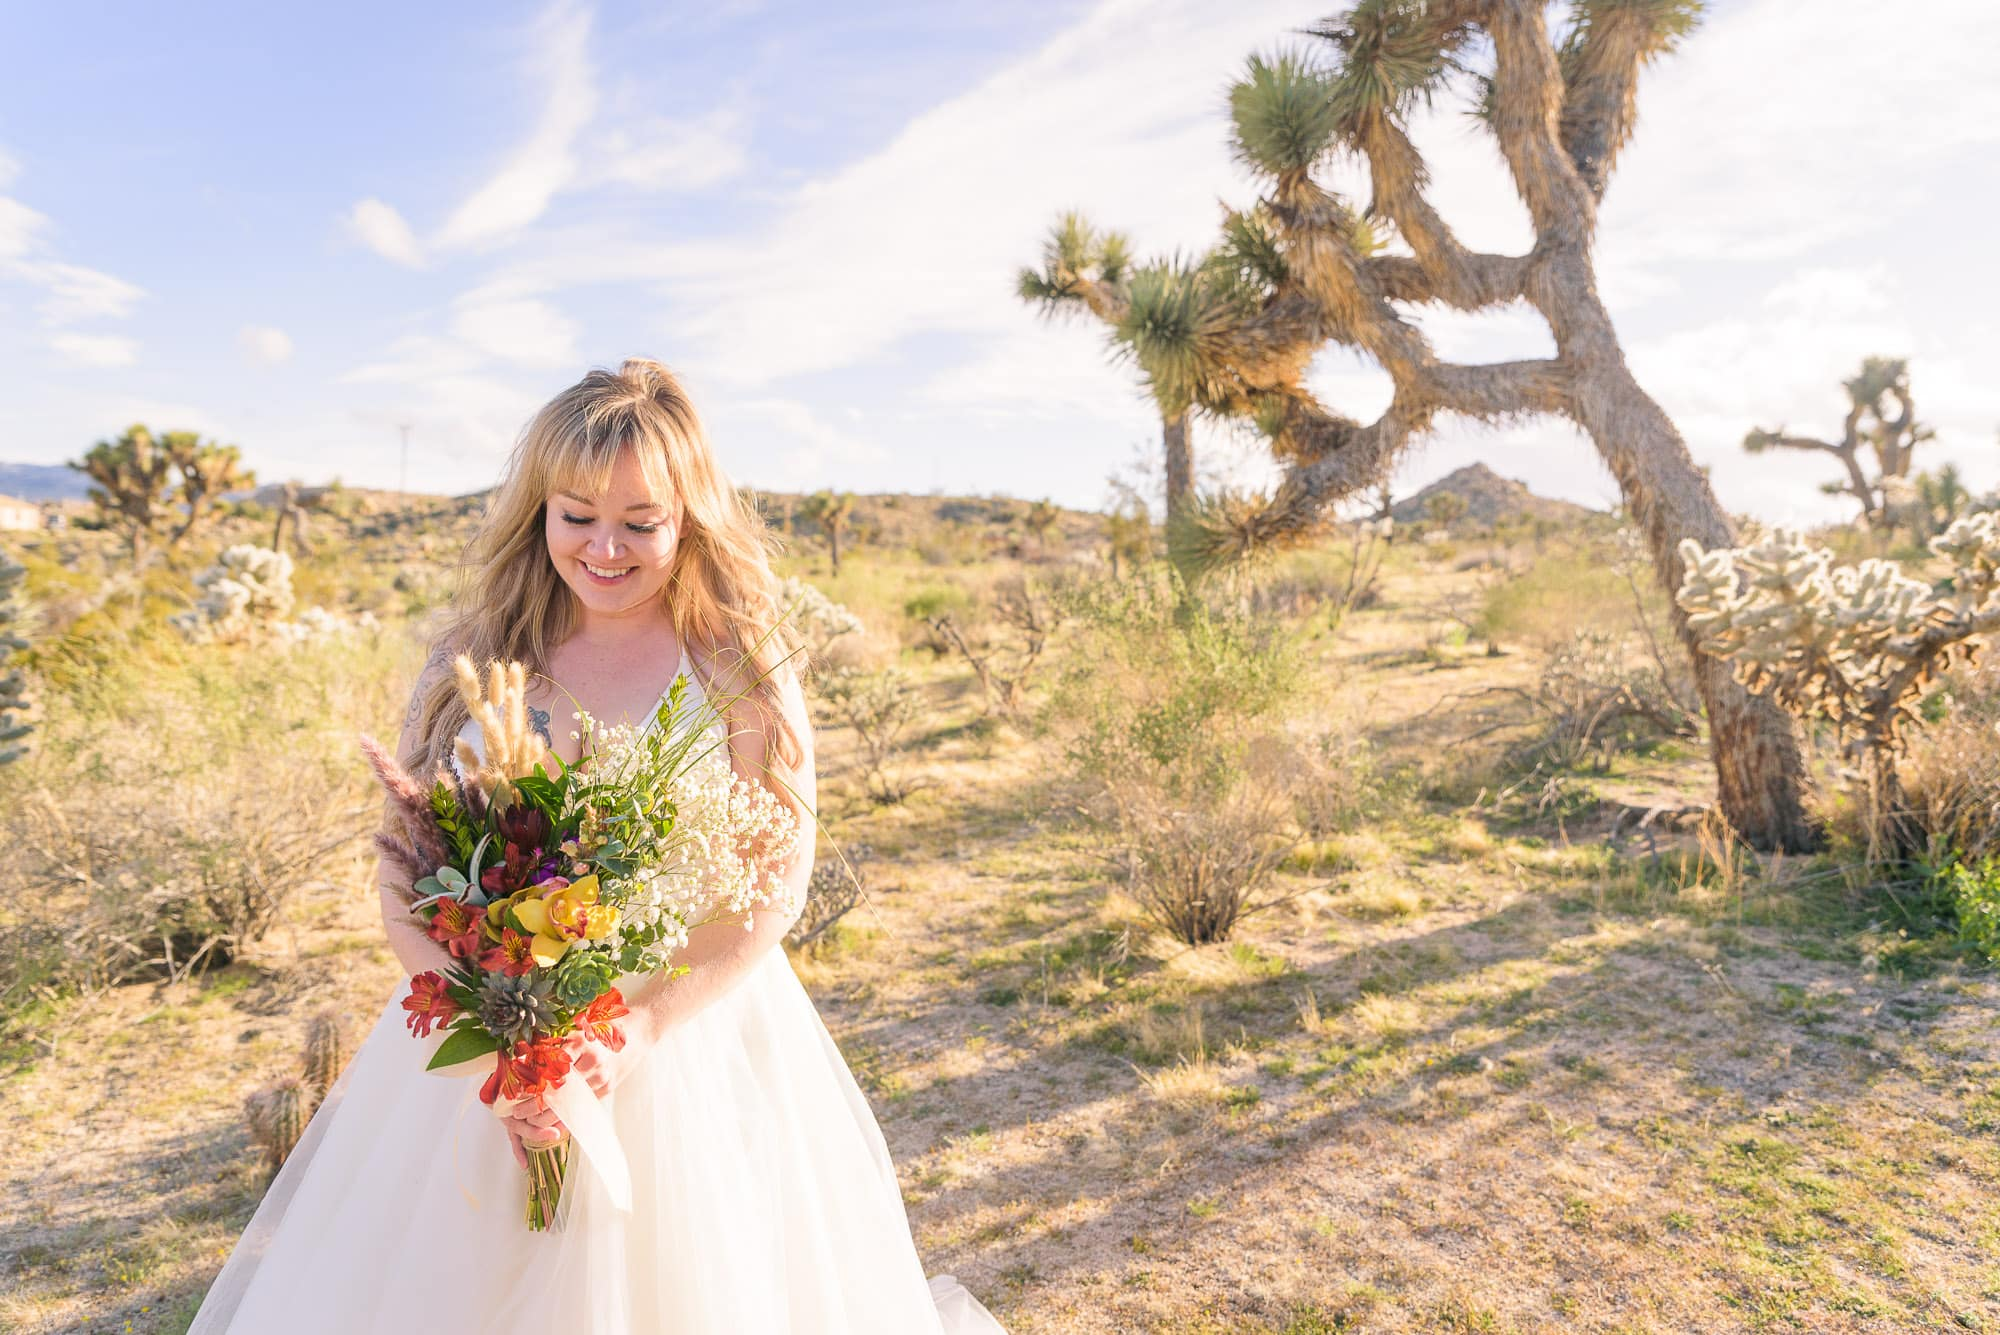 043_Alan_and_Heidi_Joshua_Tree_Spring_Elopement